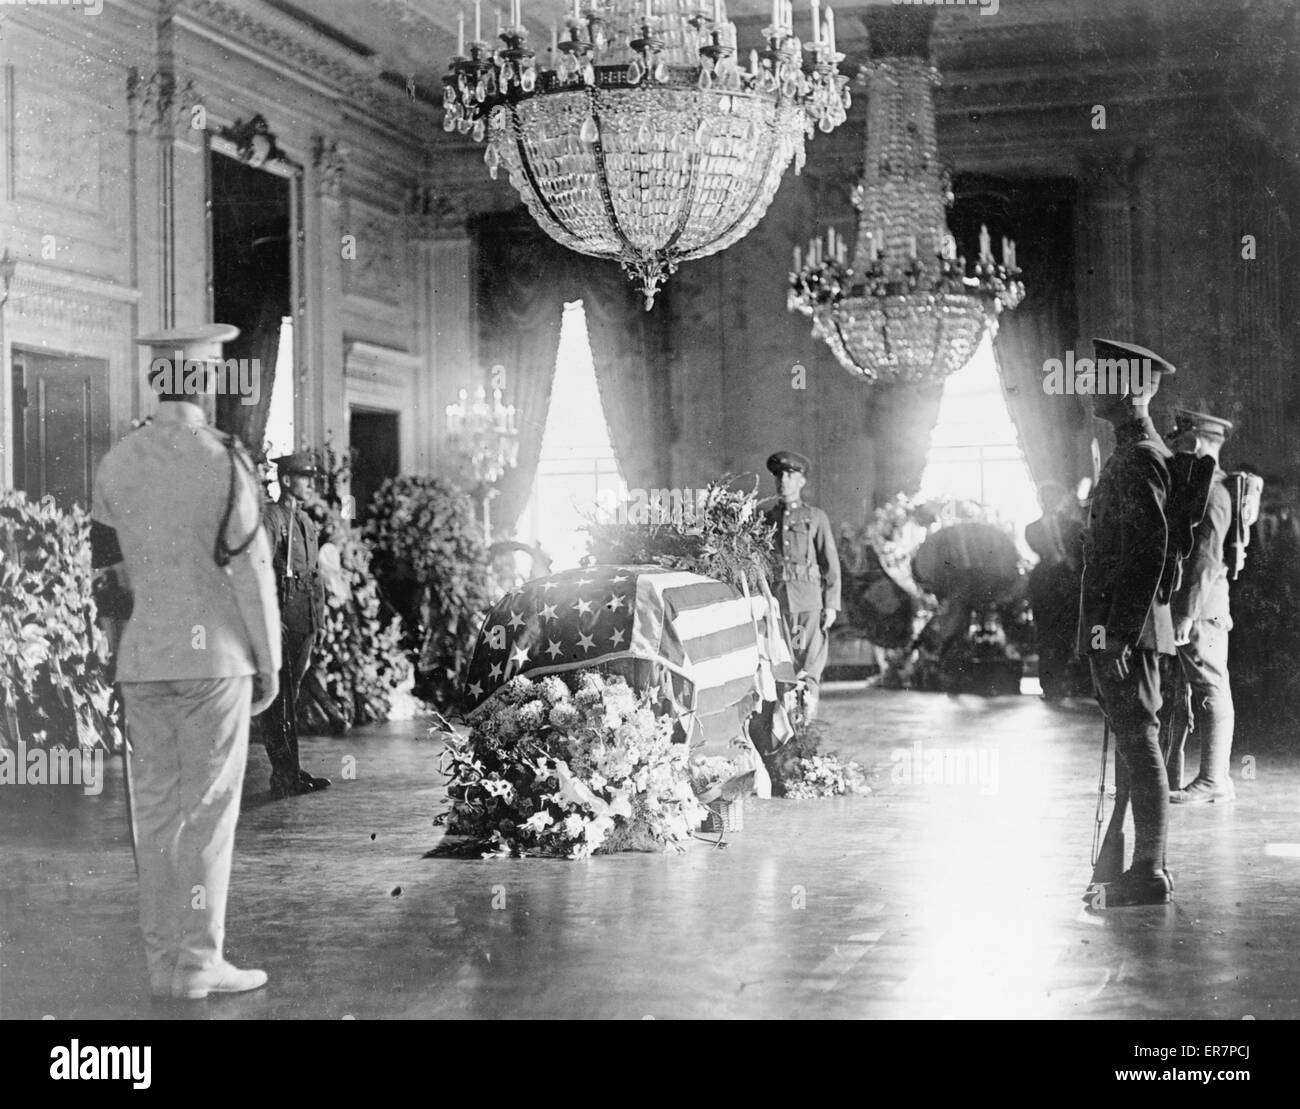 President Warren G. Harding's body lying in state in the East Room of the White House. Date 1923. - Stock Image